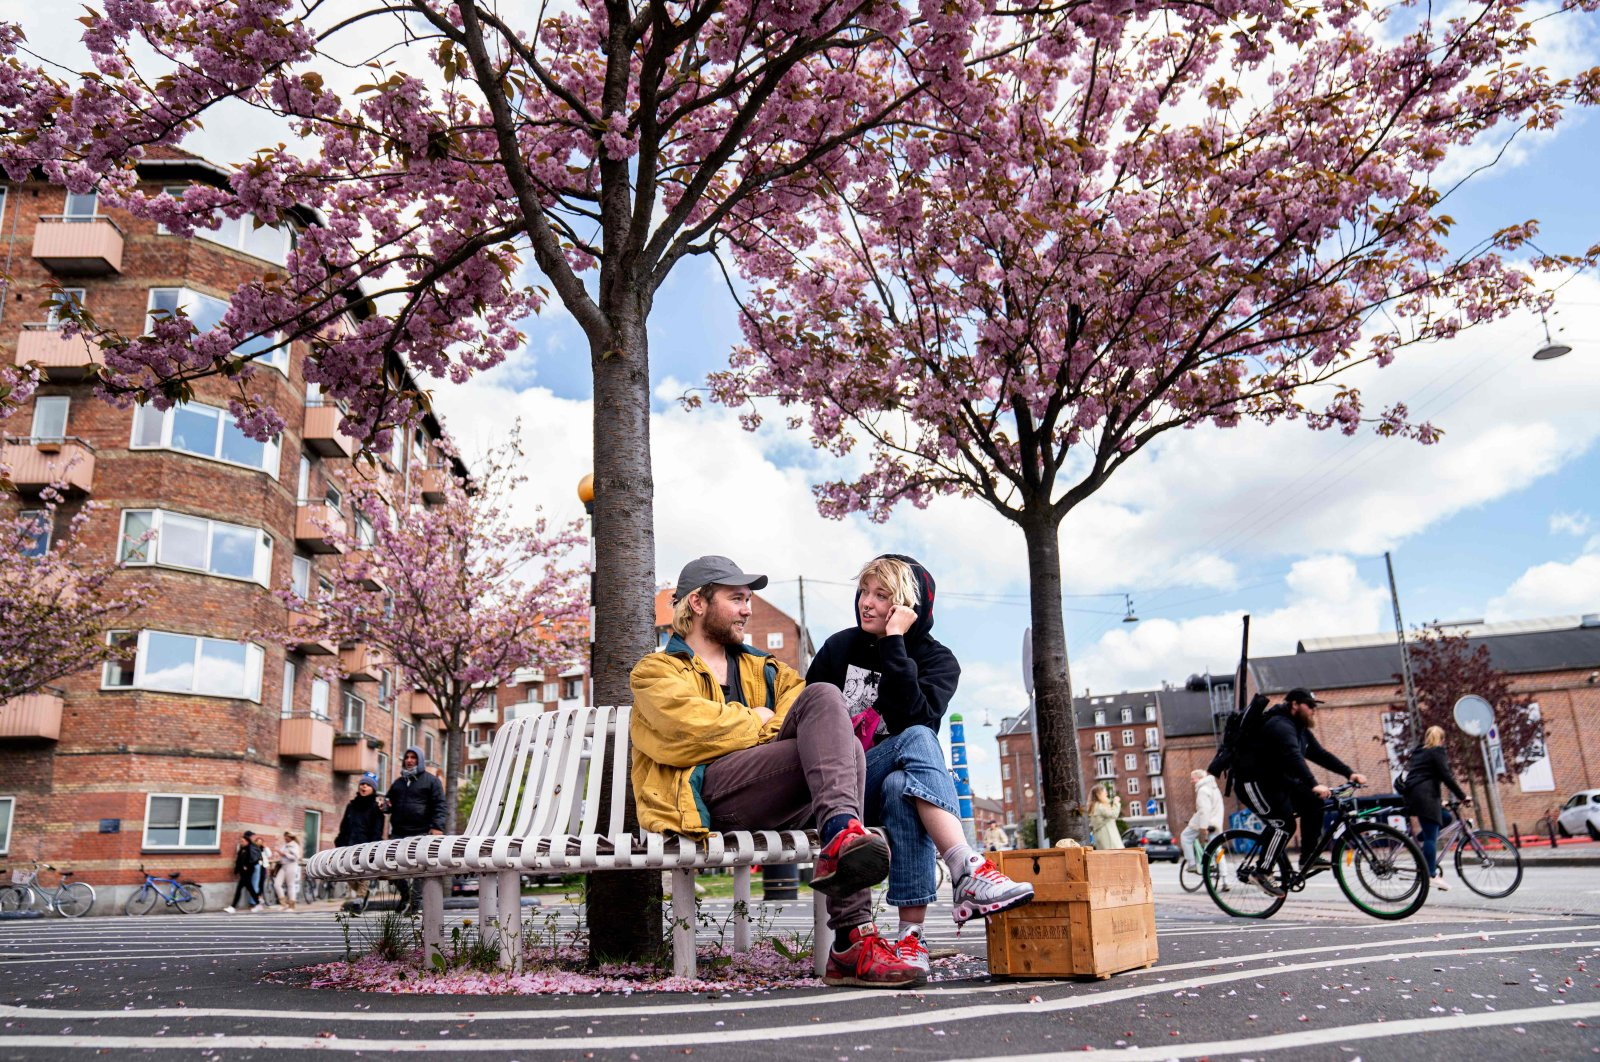 A man and woman sit on a bench under Japanese cherry trees in full bloom, Copenhagen, Denmark, May 3, 2020. (AFP Photo)